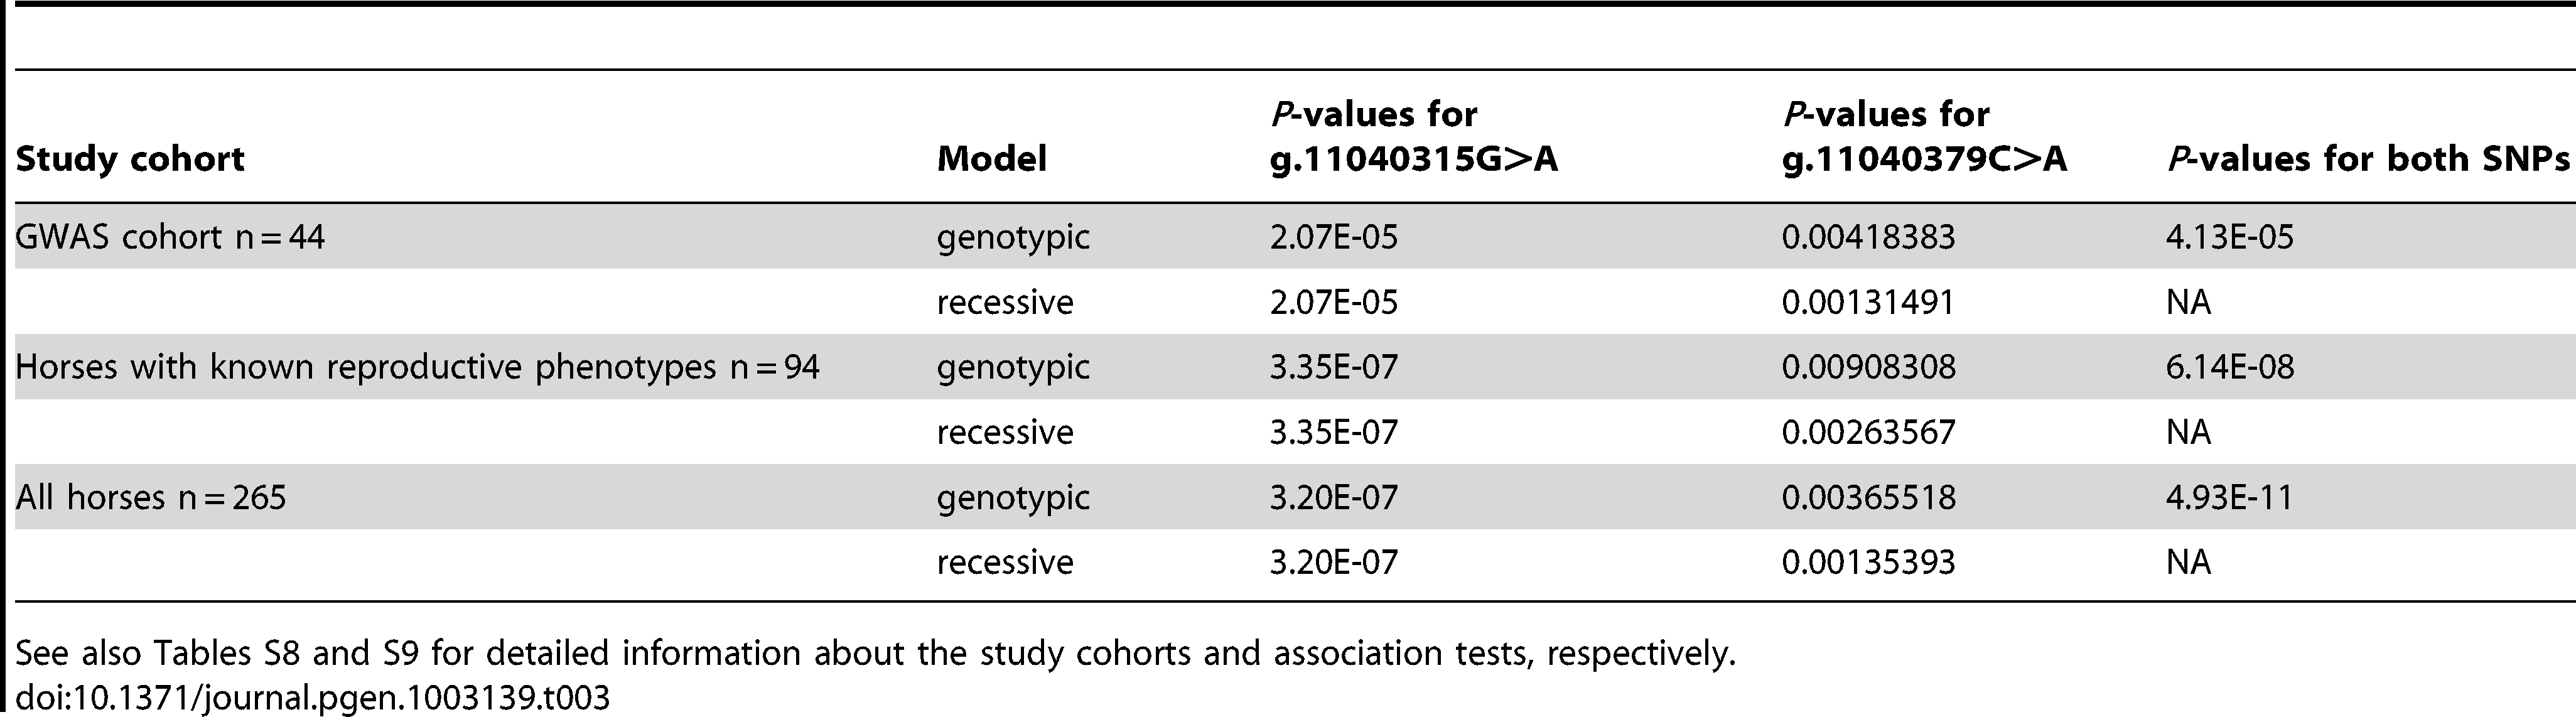 Association analysis of <i>FKBP6</i> exon 4 and the IAR phenotype in three different study cohorts using Fisher's exact test over genotypic and recessive coding.